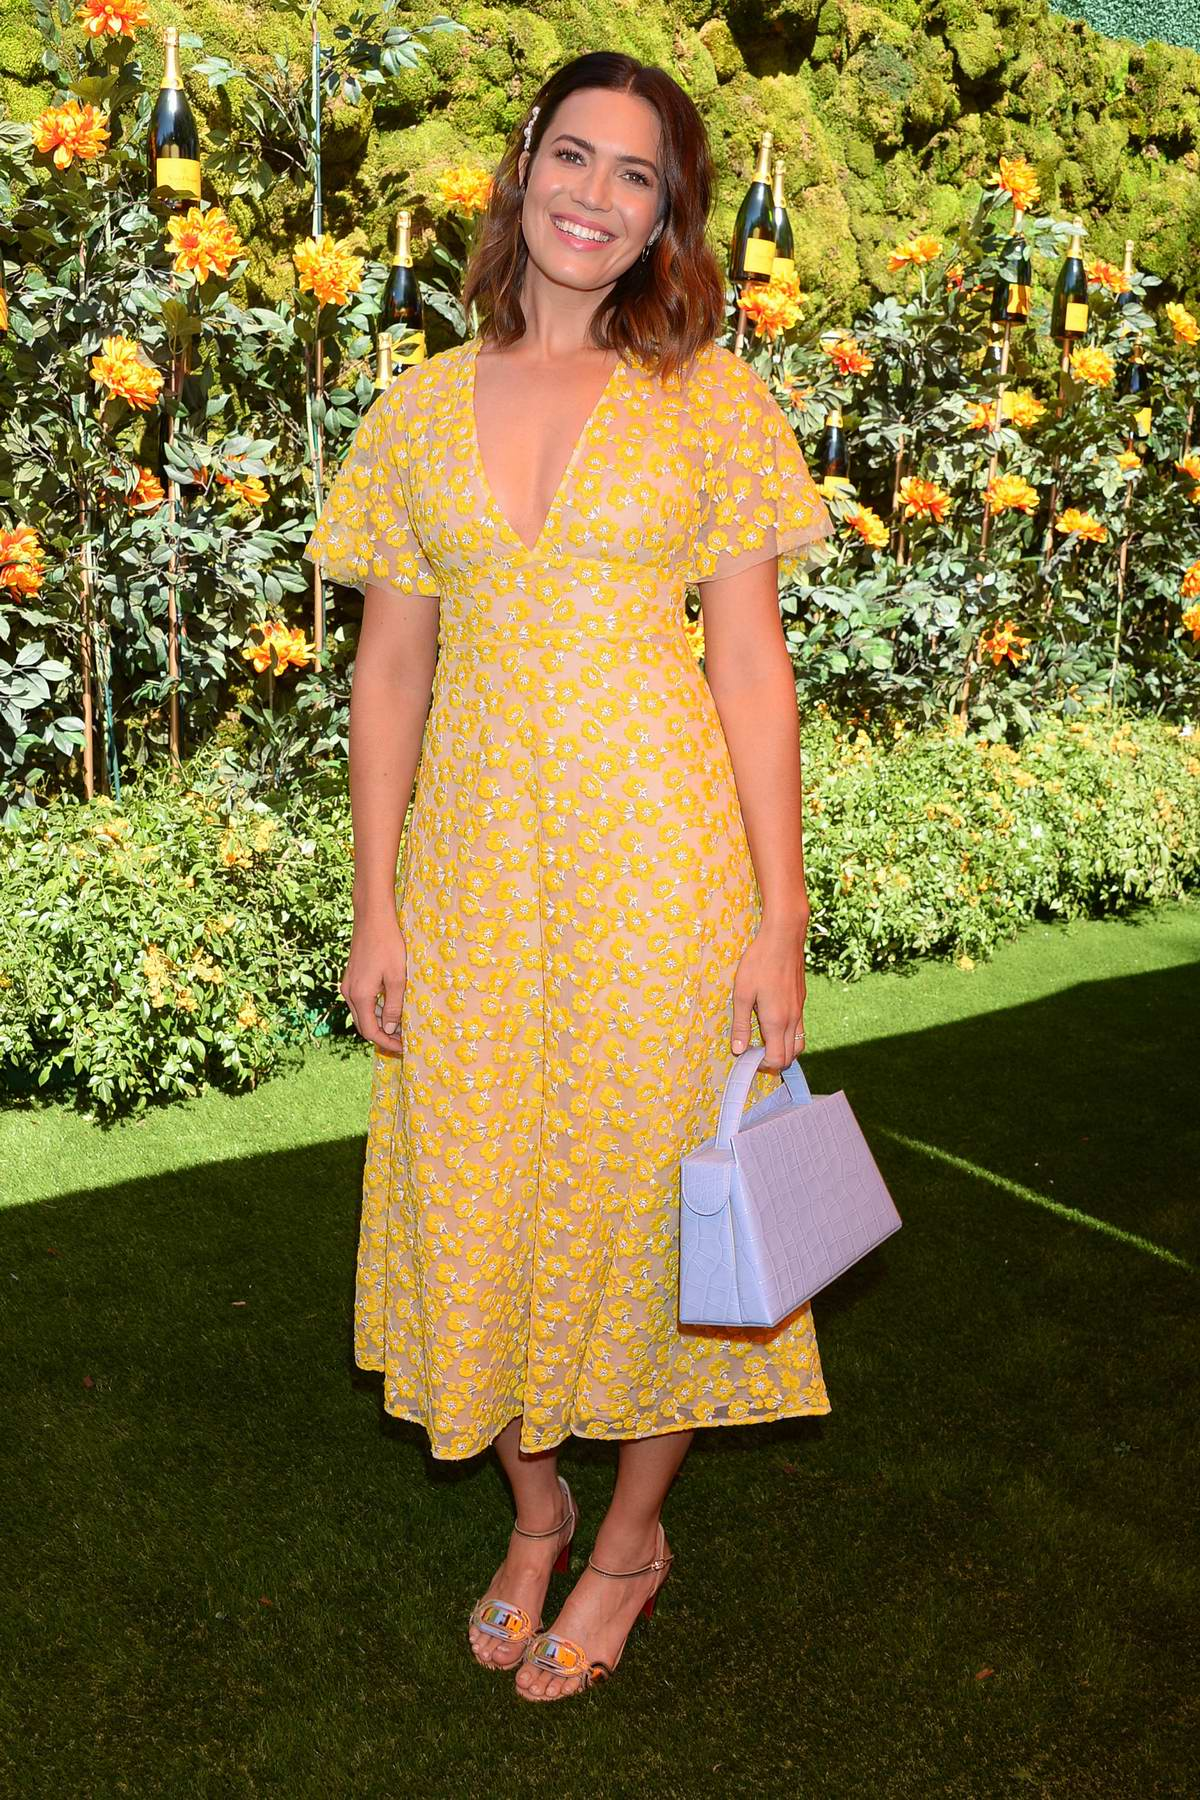 Mandy Moore attends the 10th annual Veuve Clicquot Polo Classic at Will Rogers State Park in Los Angeles